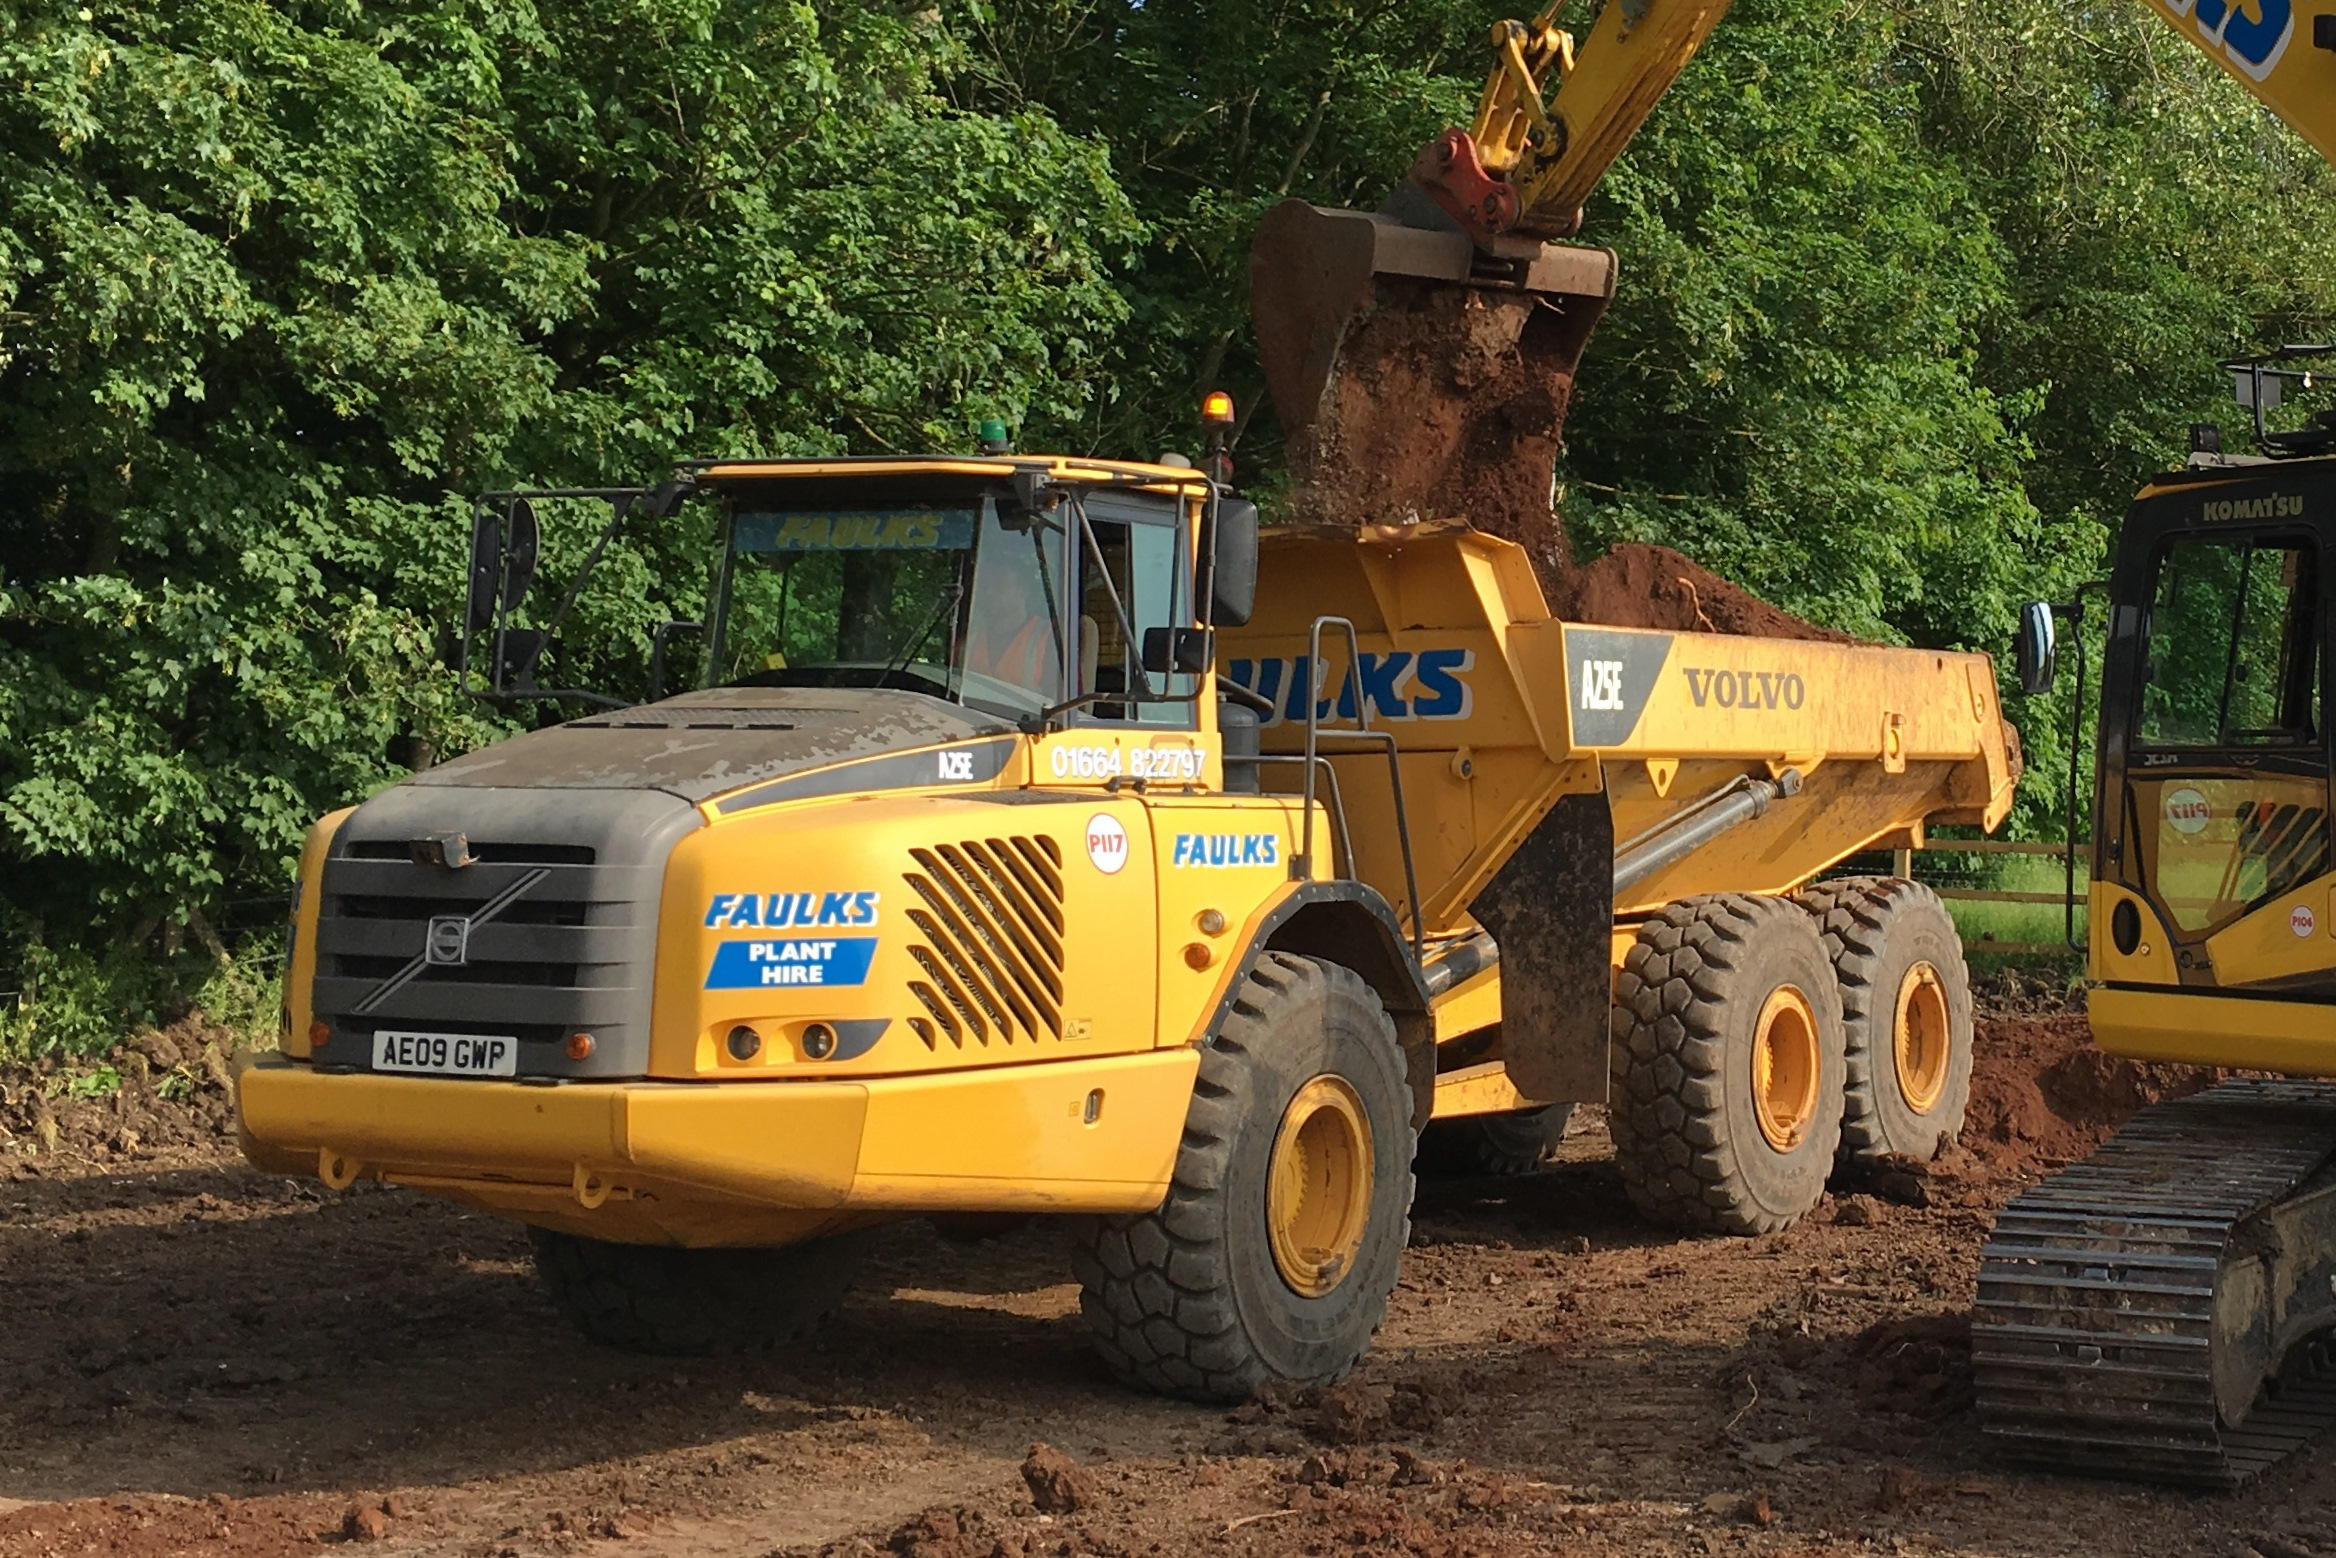 A Volvo A25E dump truck hired from AE Faulks being filled with excavated soil